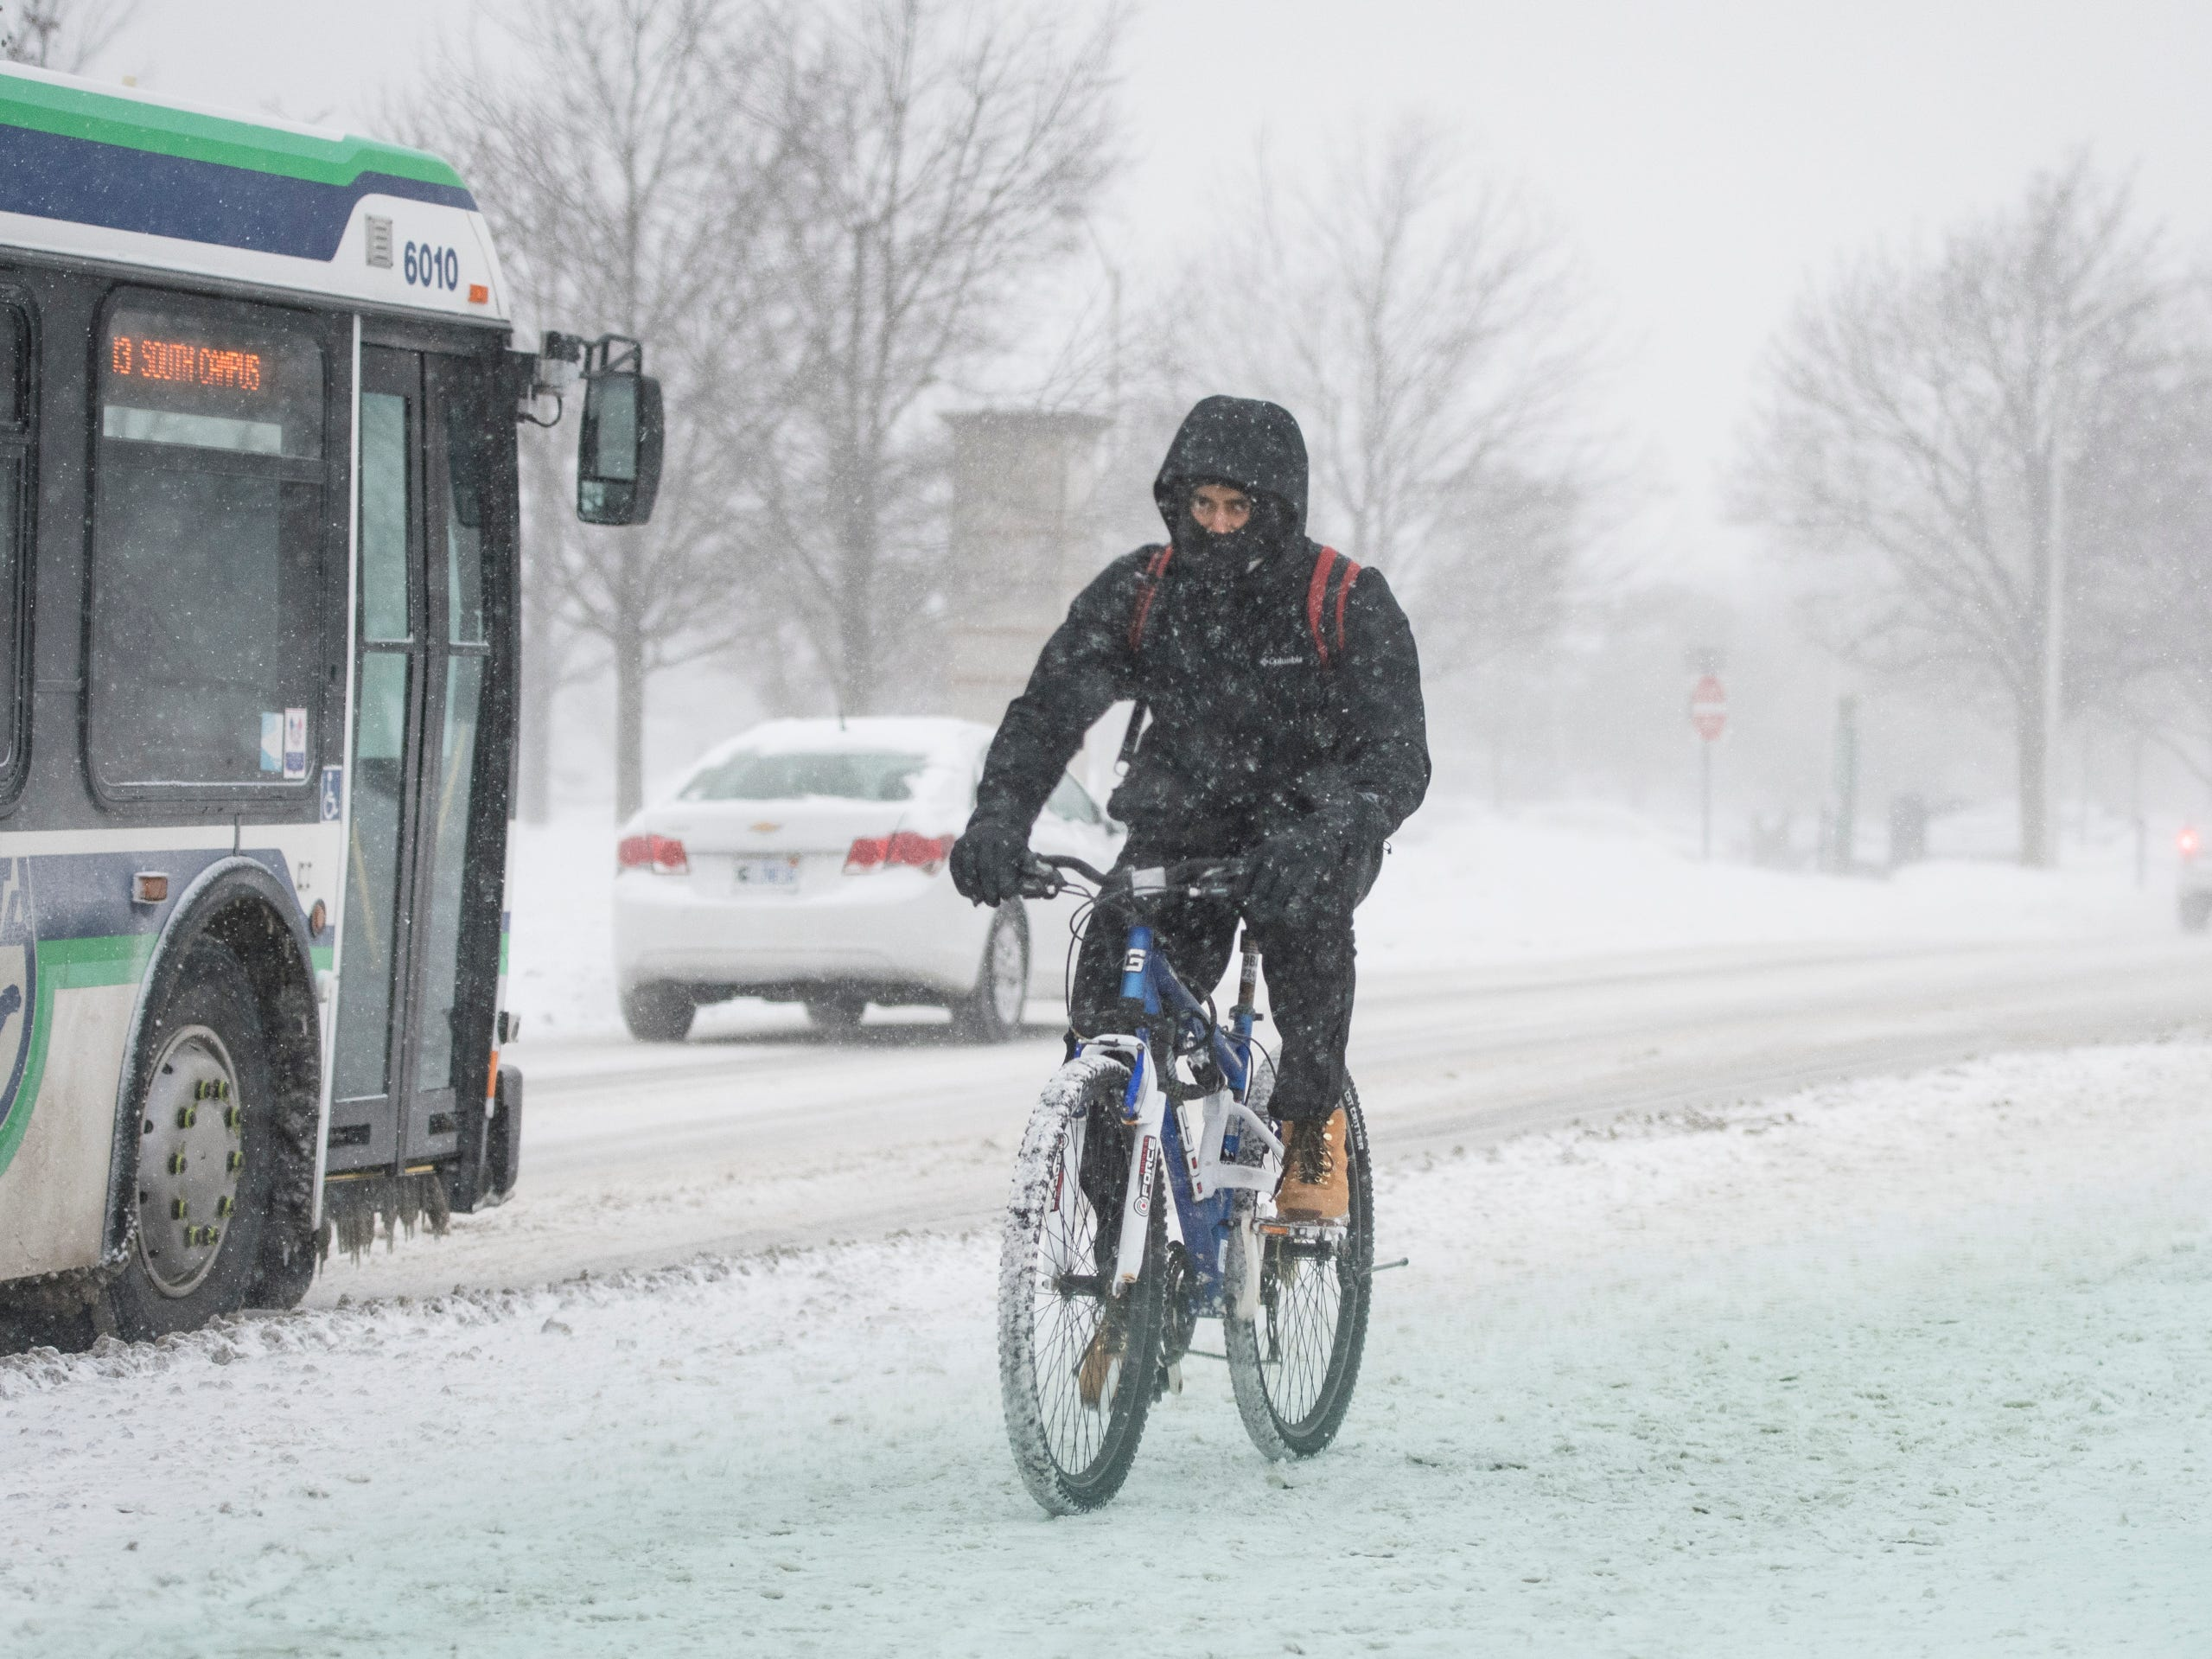 A bicyclist rides on the campus of Michigan State University Tuesday, Jan. 29, 2019, in East Lansing, Michigan.  MSU has called off classes tommorow due to bitter temperatures.  [USA Today Network/Matthew Dae Smith/Lansing State Journal]